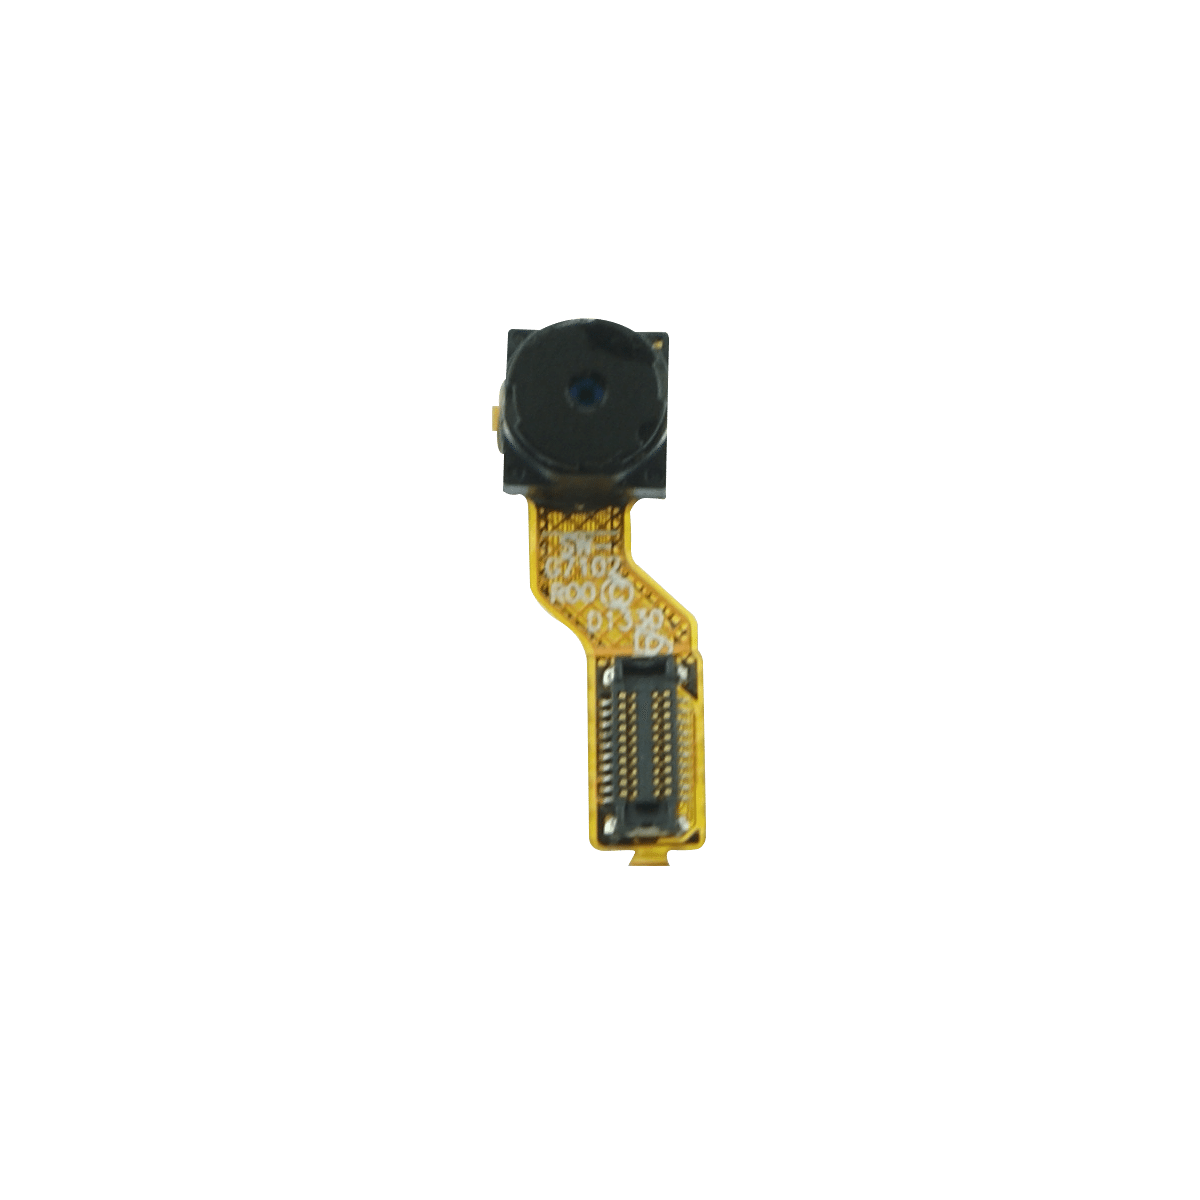 Samsung Galaxy Grand 2 G7102 G7105 Front Camera Replacement